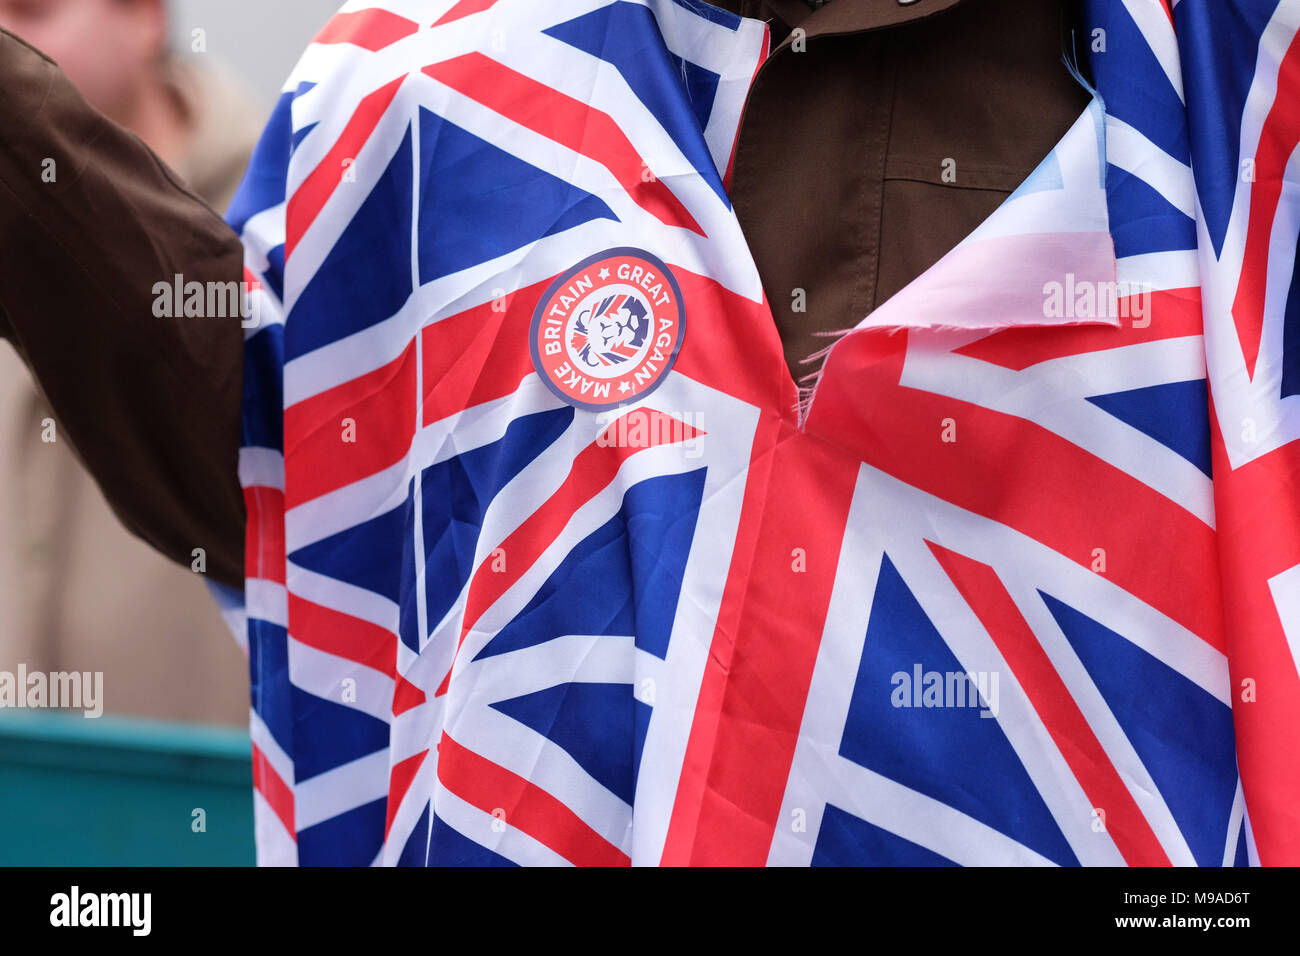 Birmingham, UK - Saturday 24th March 2018 - Protester wearing a Make Britain Great Again badge during the demonstration and march by the Football Lads Alliance ( FLA ) in Birmingham. Photo Steven May / Alamy Live News - Stock Image